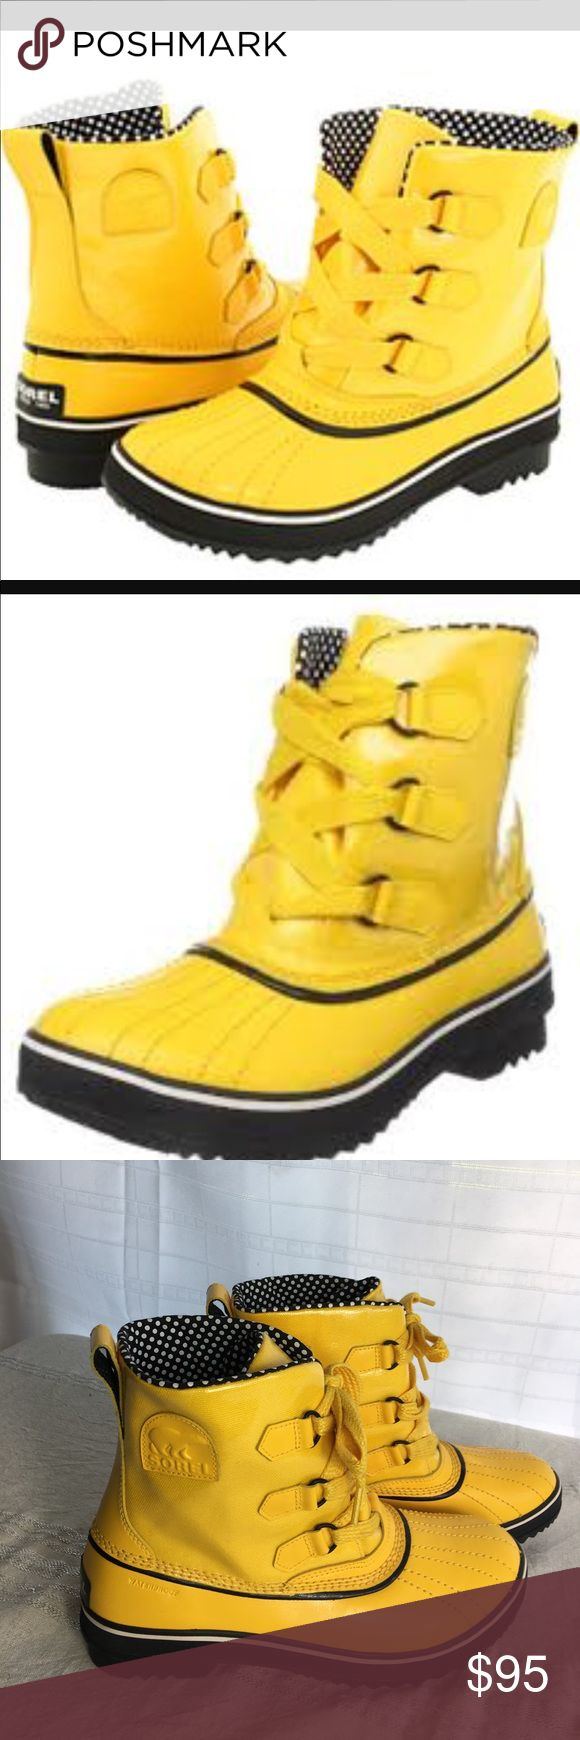 Sorel Tivoli Yellow Polka Dot Rain Boots- Unicorn Super hard to find yellow Tivoli leather & coated canvas rain boot.  Polka dotted inside...worn once.  Like new condition except for a few smudges on one shoelace. Sorel Shoes Winter & Rain Boots